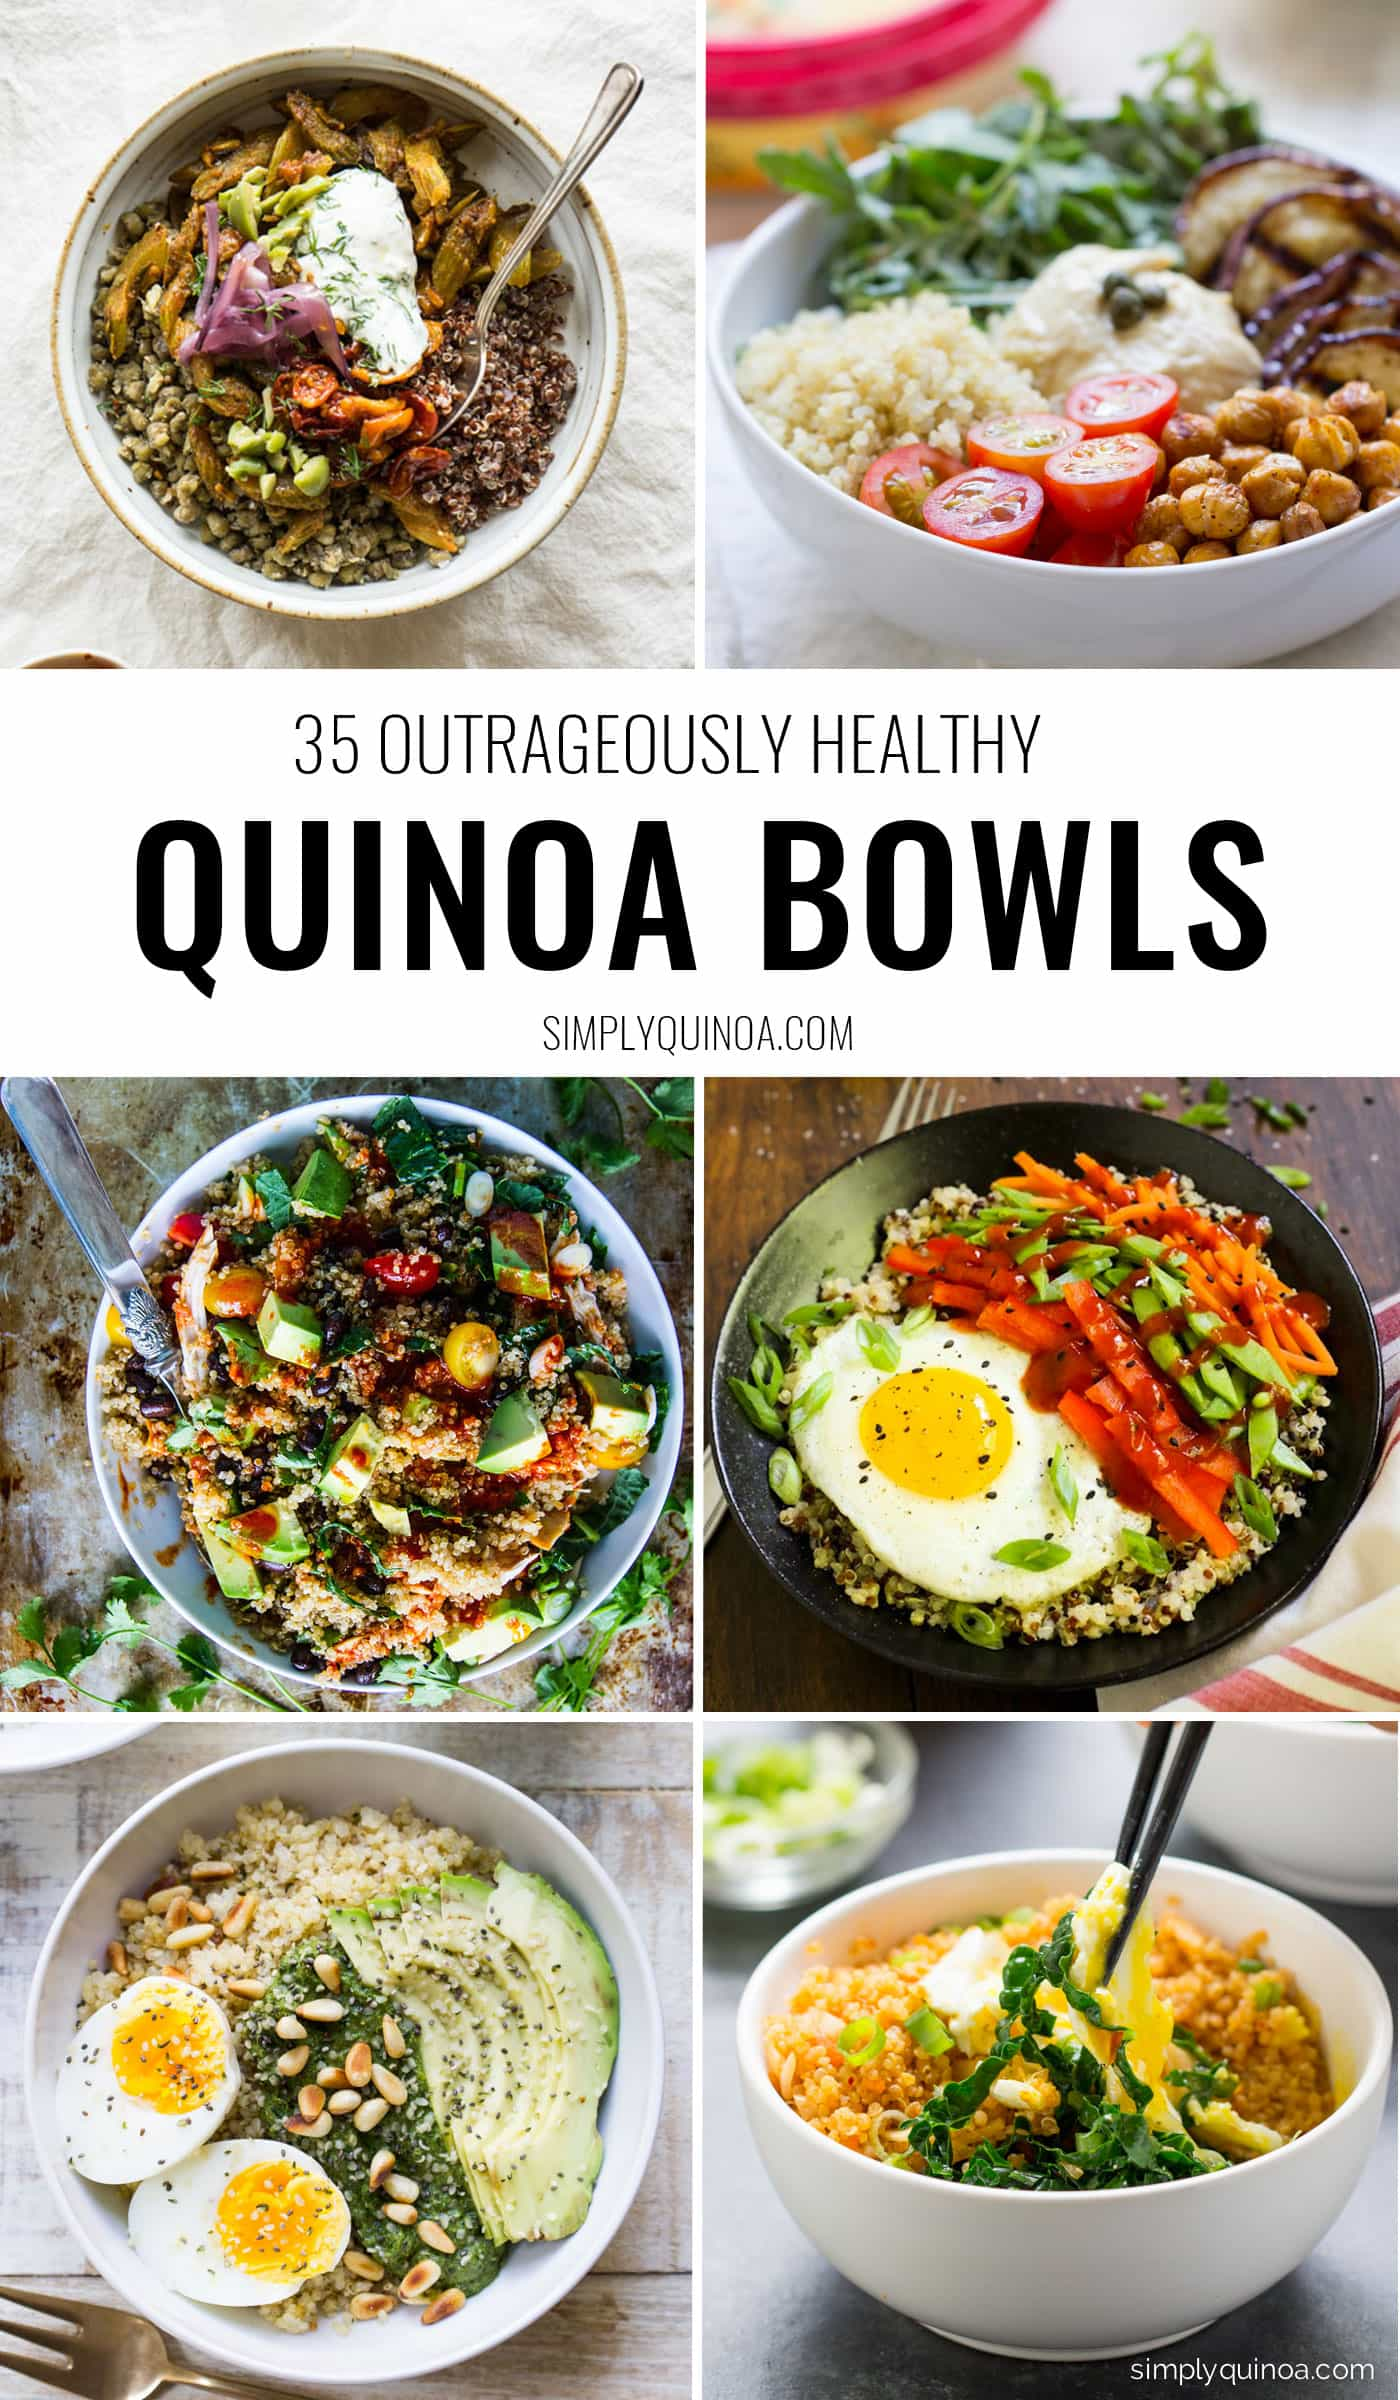 Bored With The Same Old Quinoa Recipe? Then You've Got To Try One